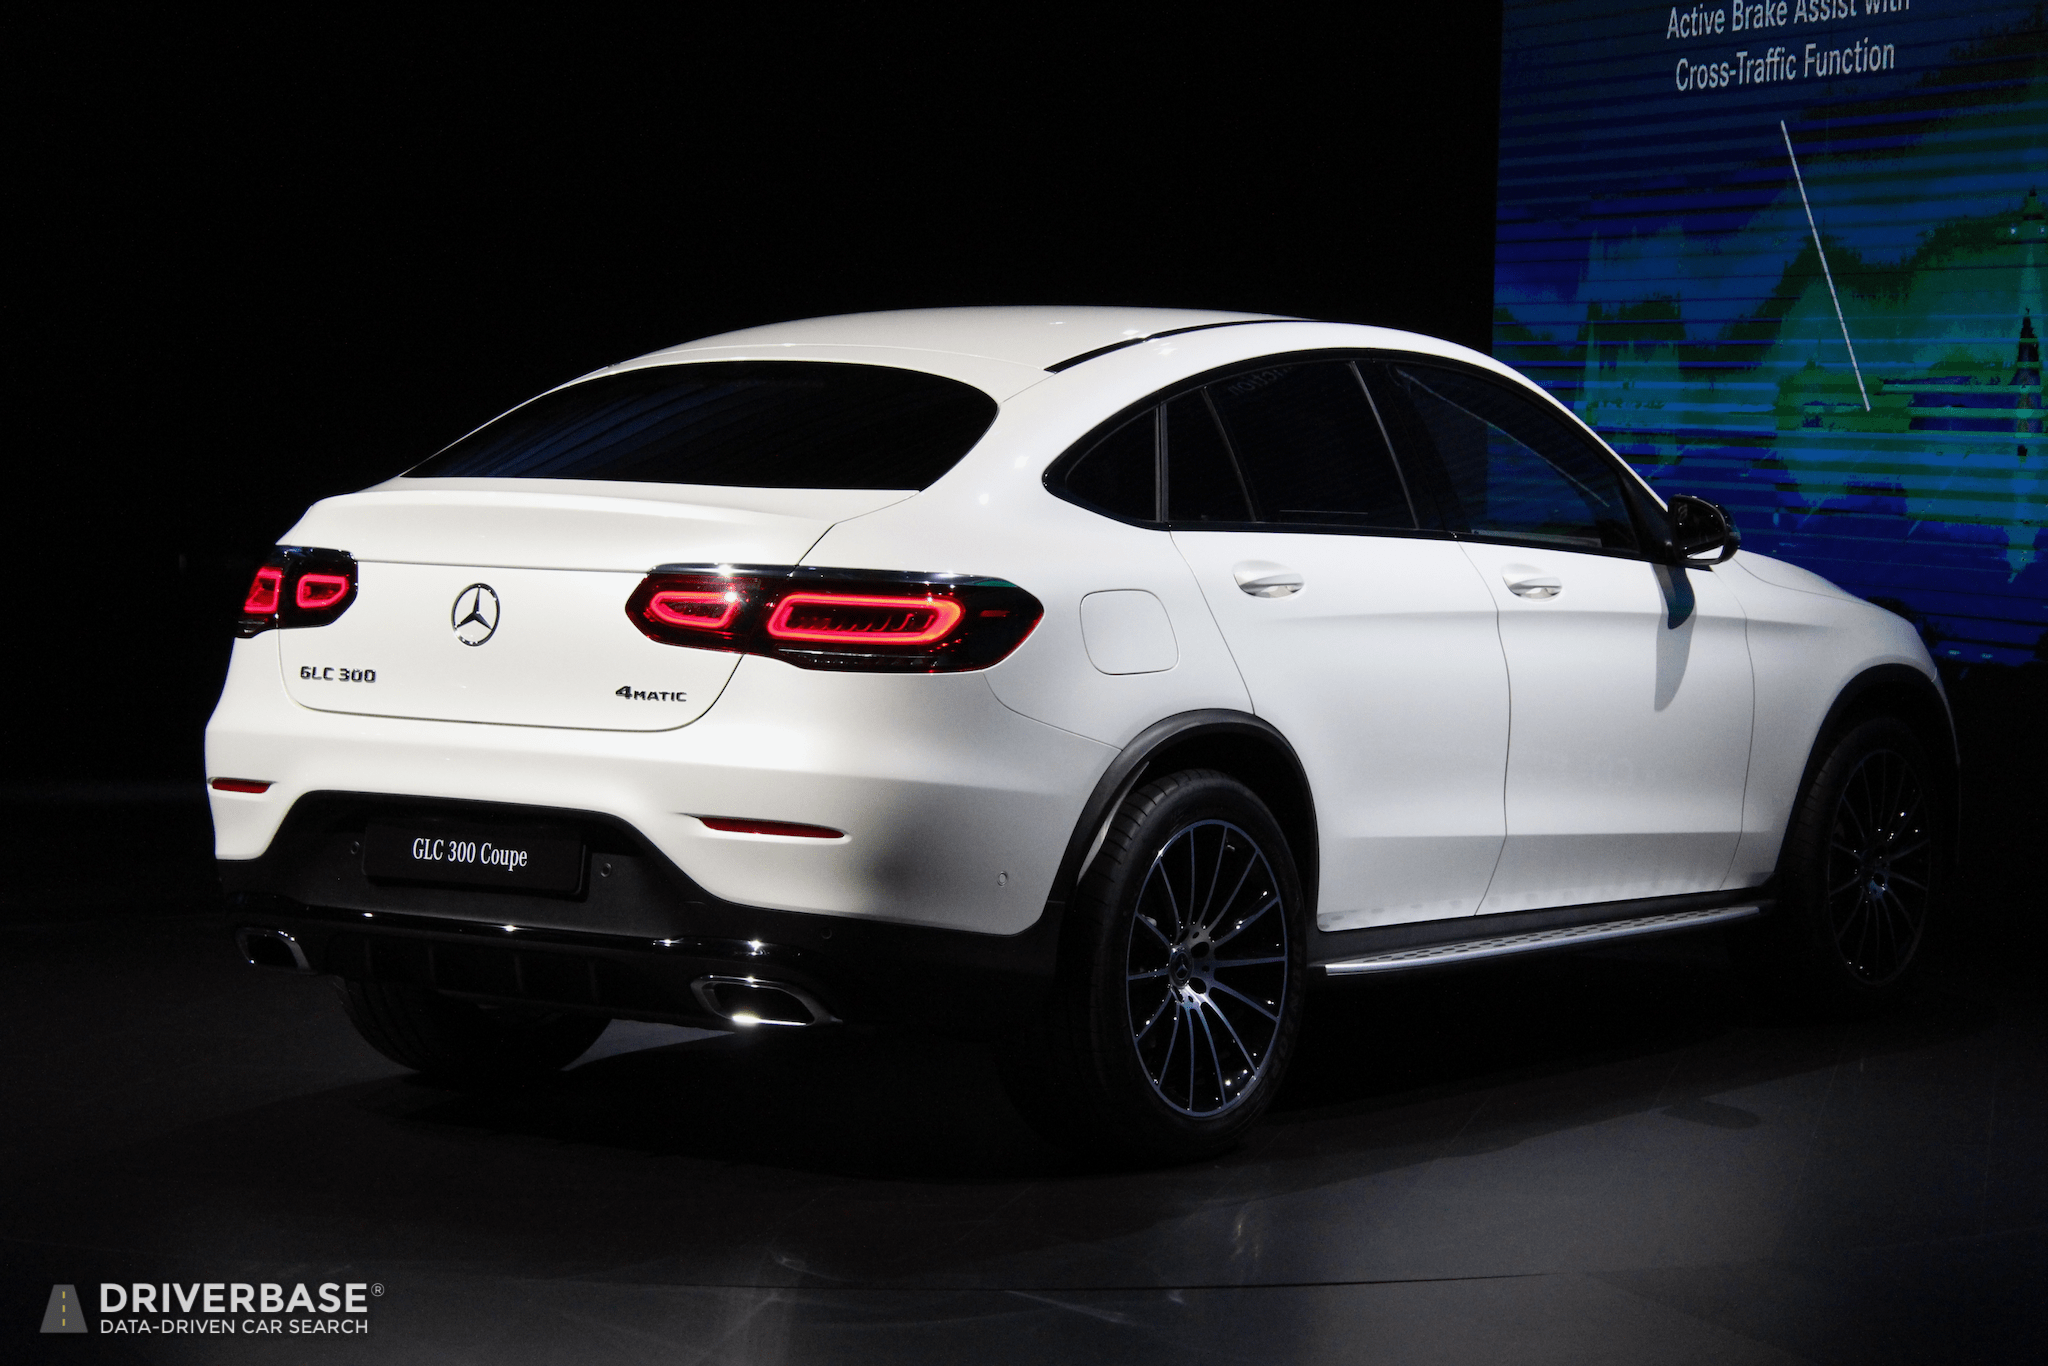 Mercedes Coupe For Sale >> 2020 Mercedes-Benz GLC 300 Coupe at the 2019 New York Auto